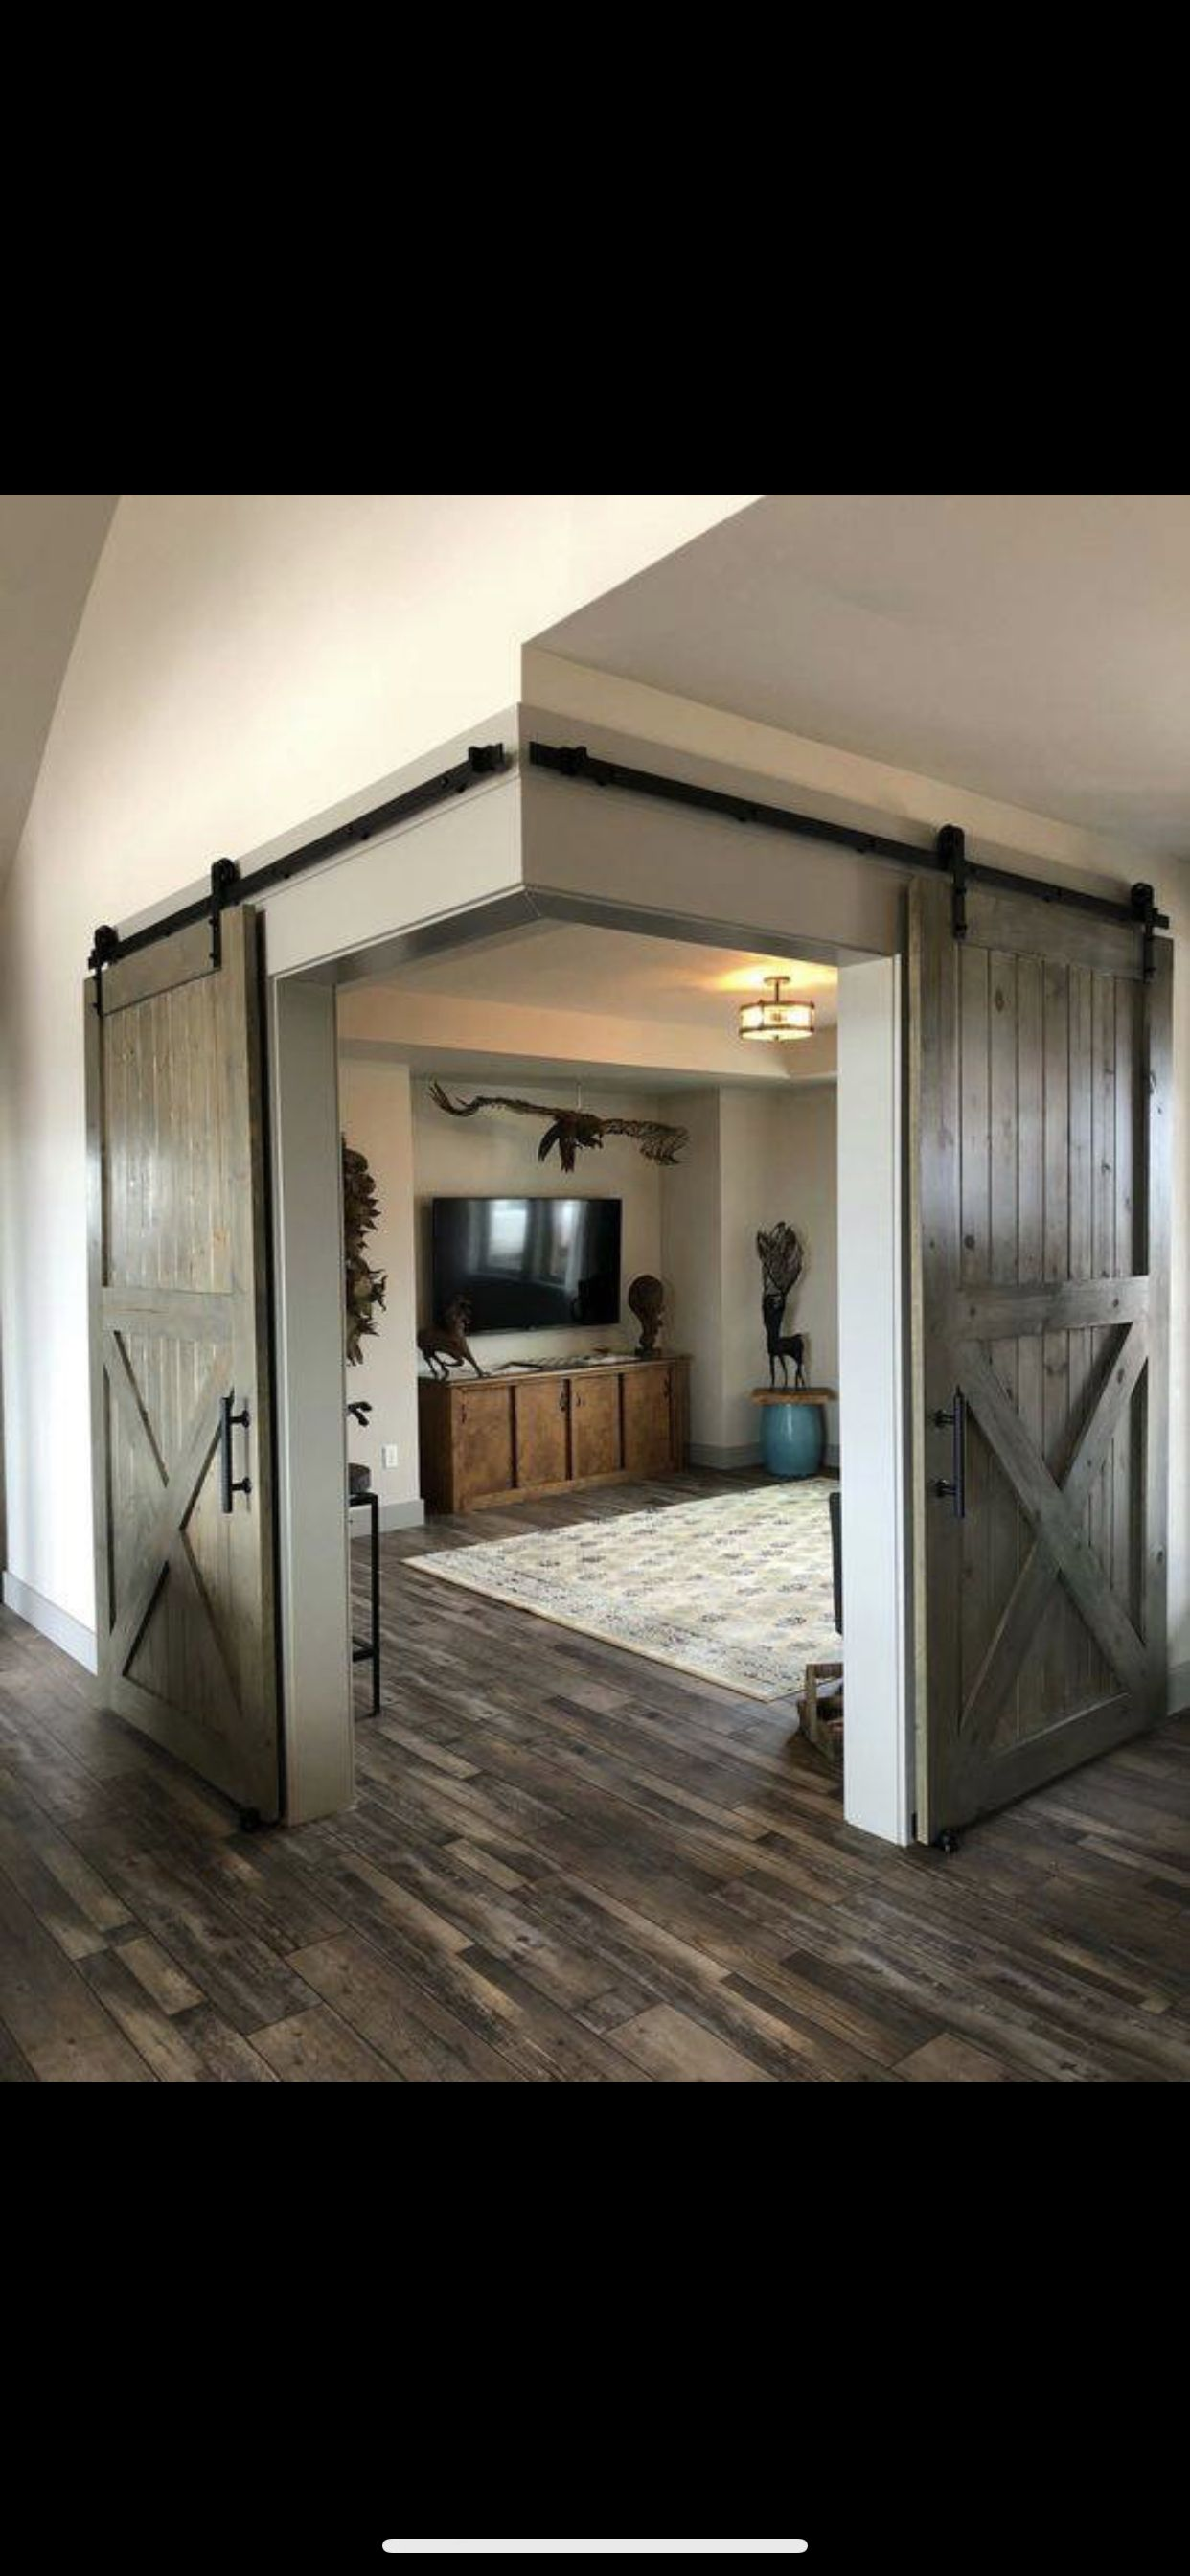 Barn Door Corner Entrance Could Be Modernized For A Different Vibe Or Kept Similar In An Urban Rustic Theme Home Dream House Decor Dream House